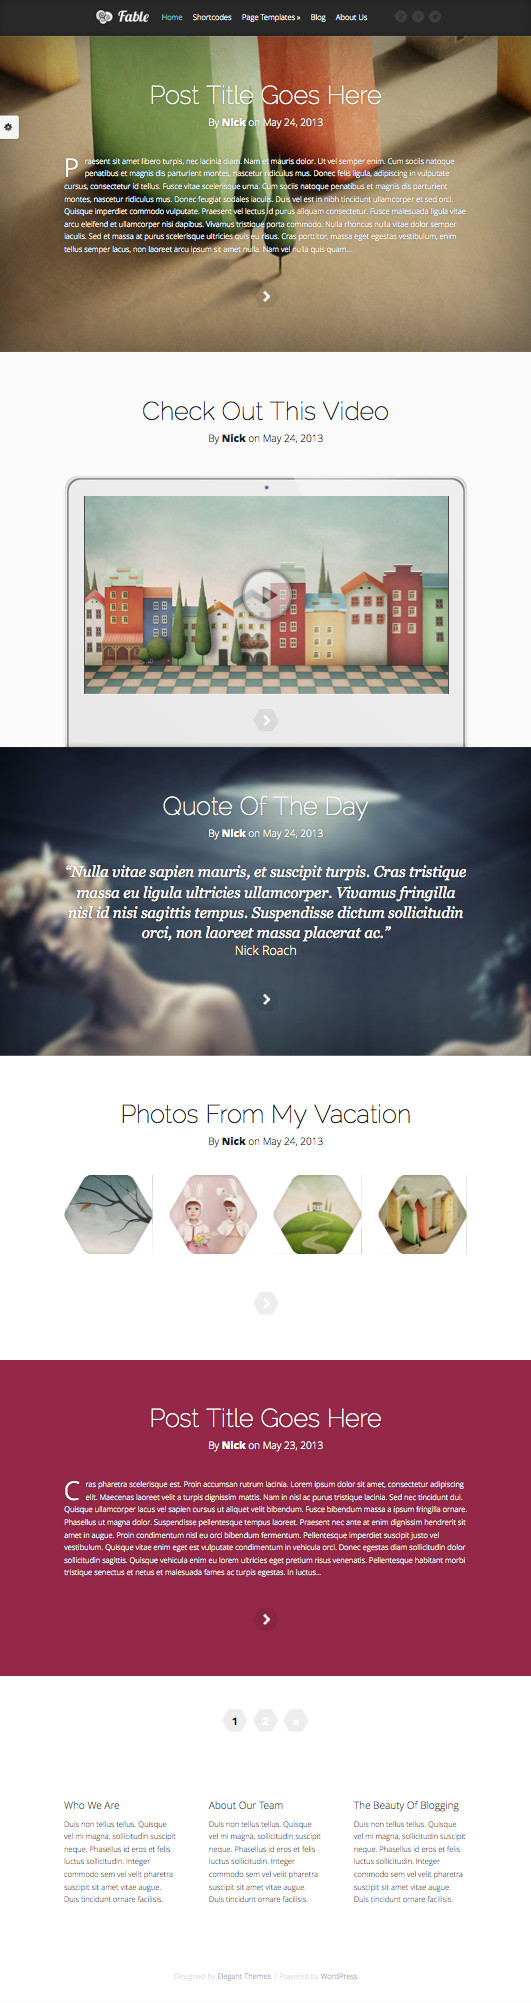 Fable WordPress Full-Screen Blog Theme